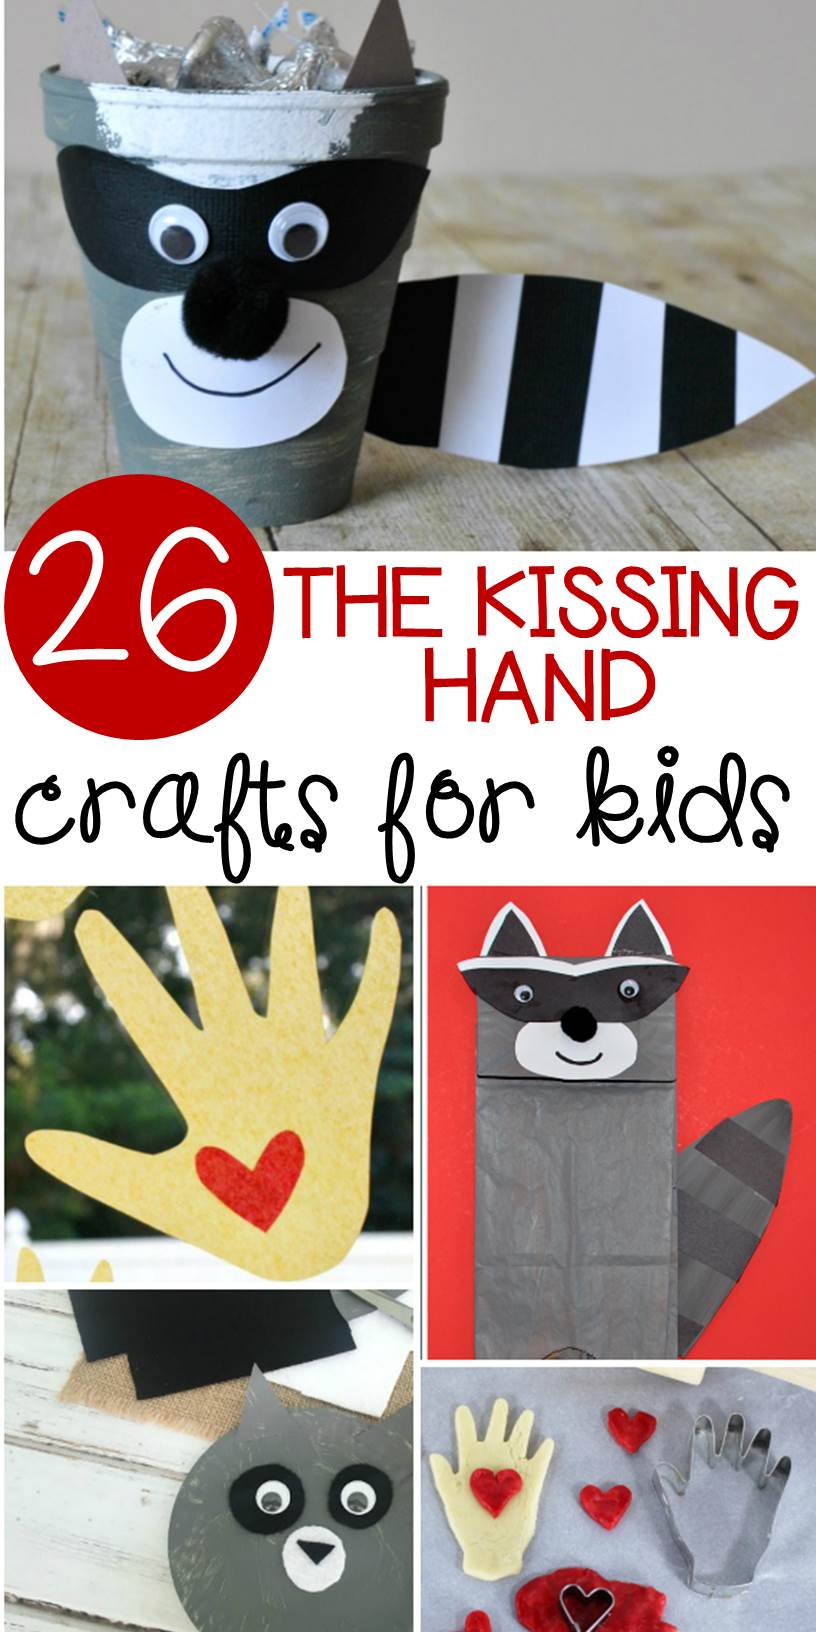 graphic relating to Kissing Hand Printable called The Kissing Hand Crafts That Are Best for Back again in direction of Higher education